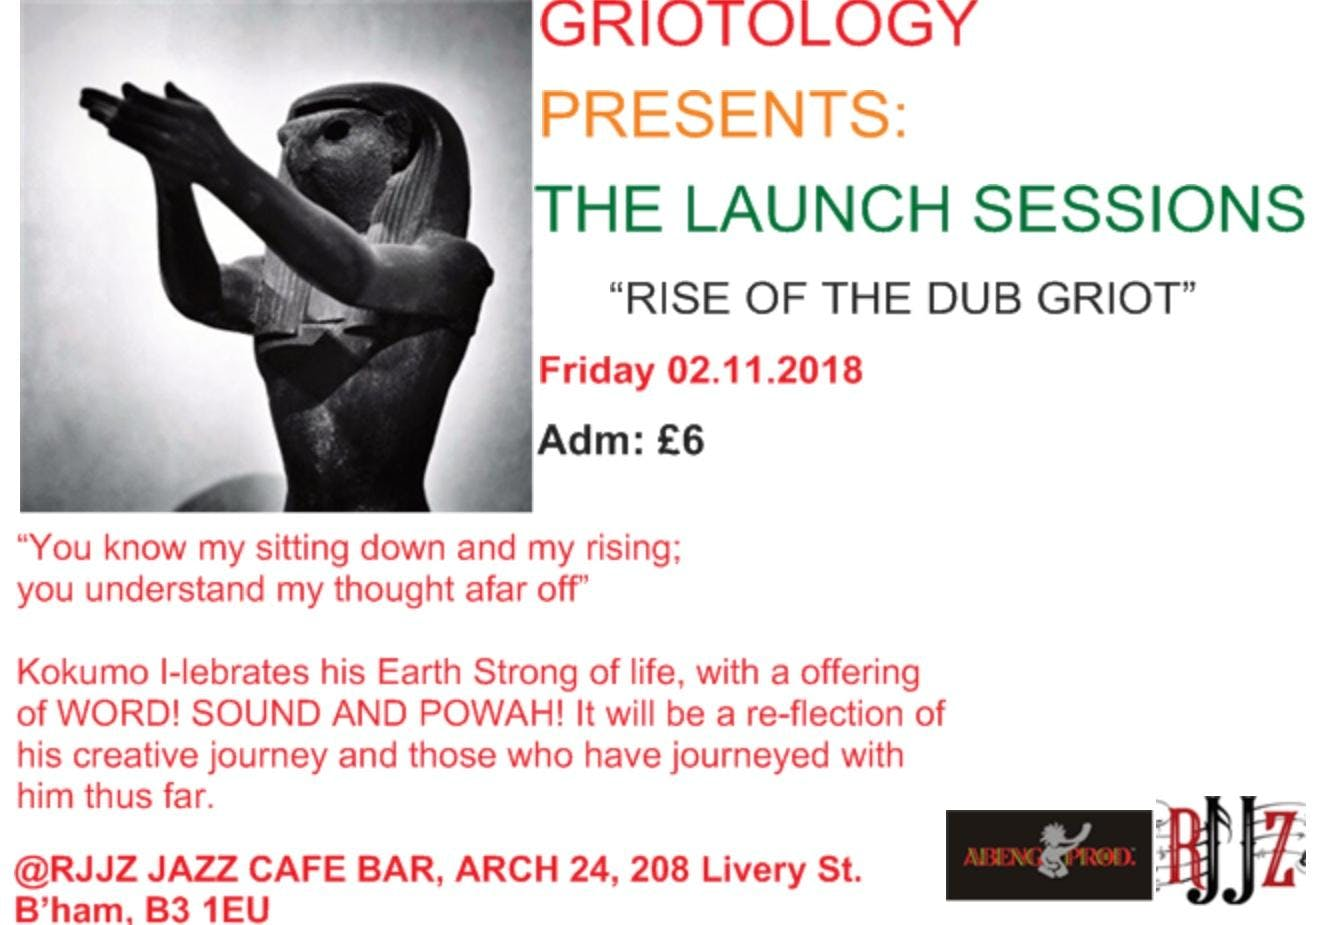 THE LAUNCH SESSIONS: RISE OF THE DUB GRIOT